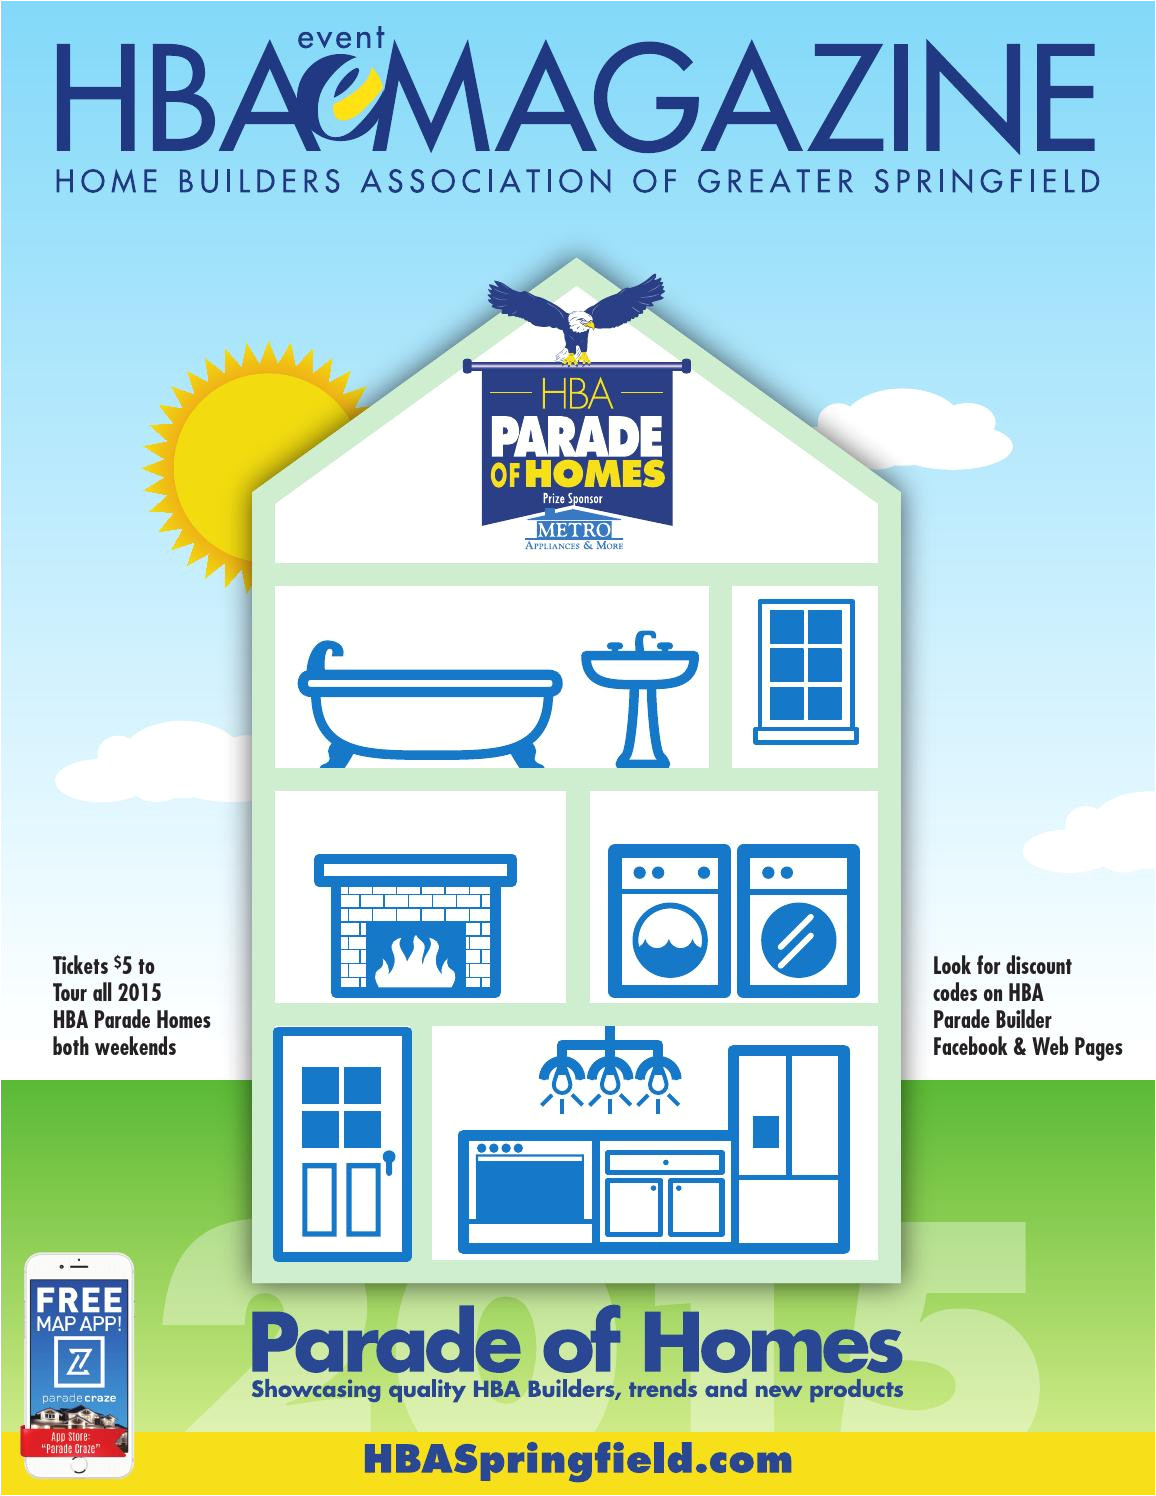 hba magazine parade of homes edition 2015 by home builders association of greater springfield issuu